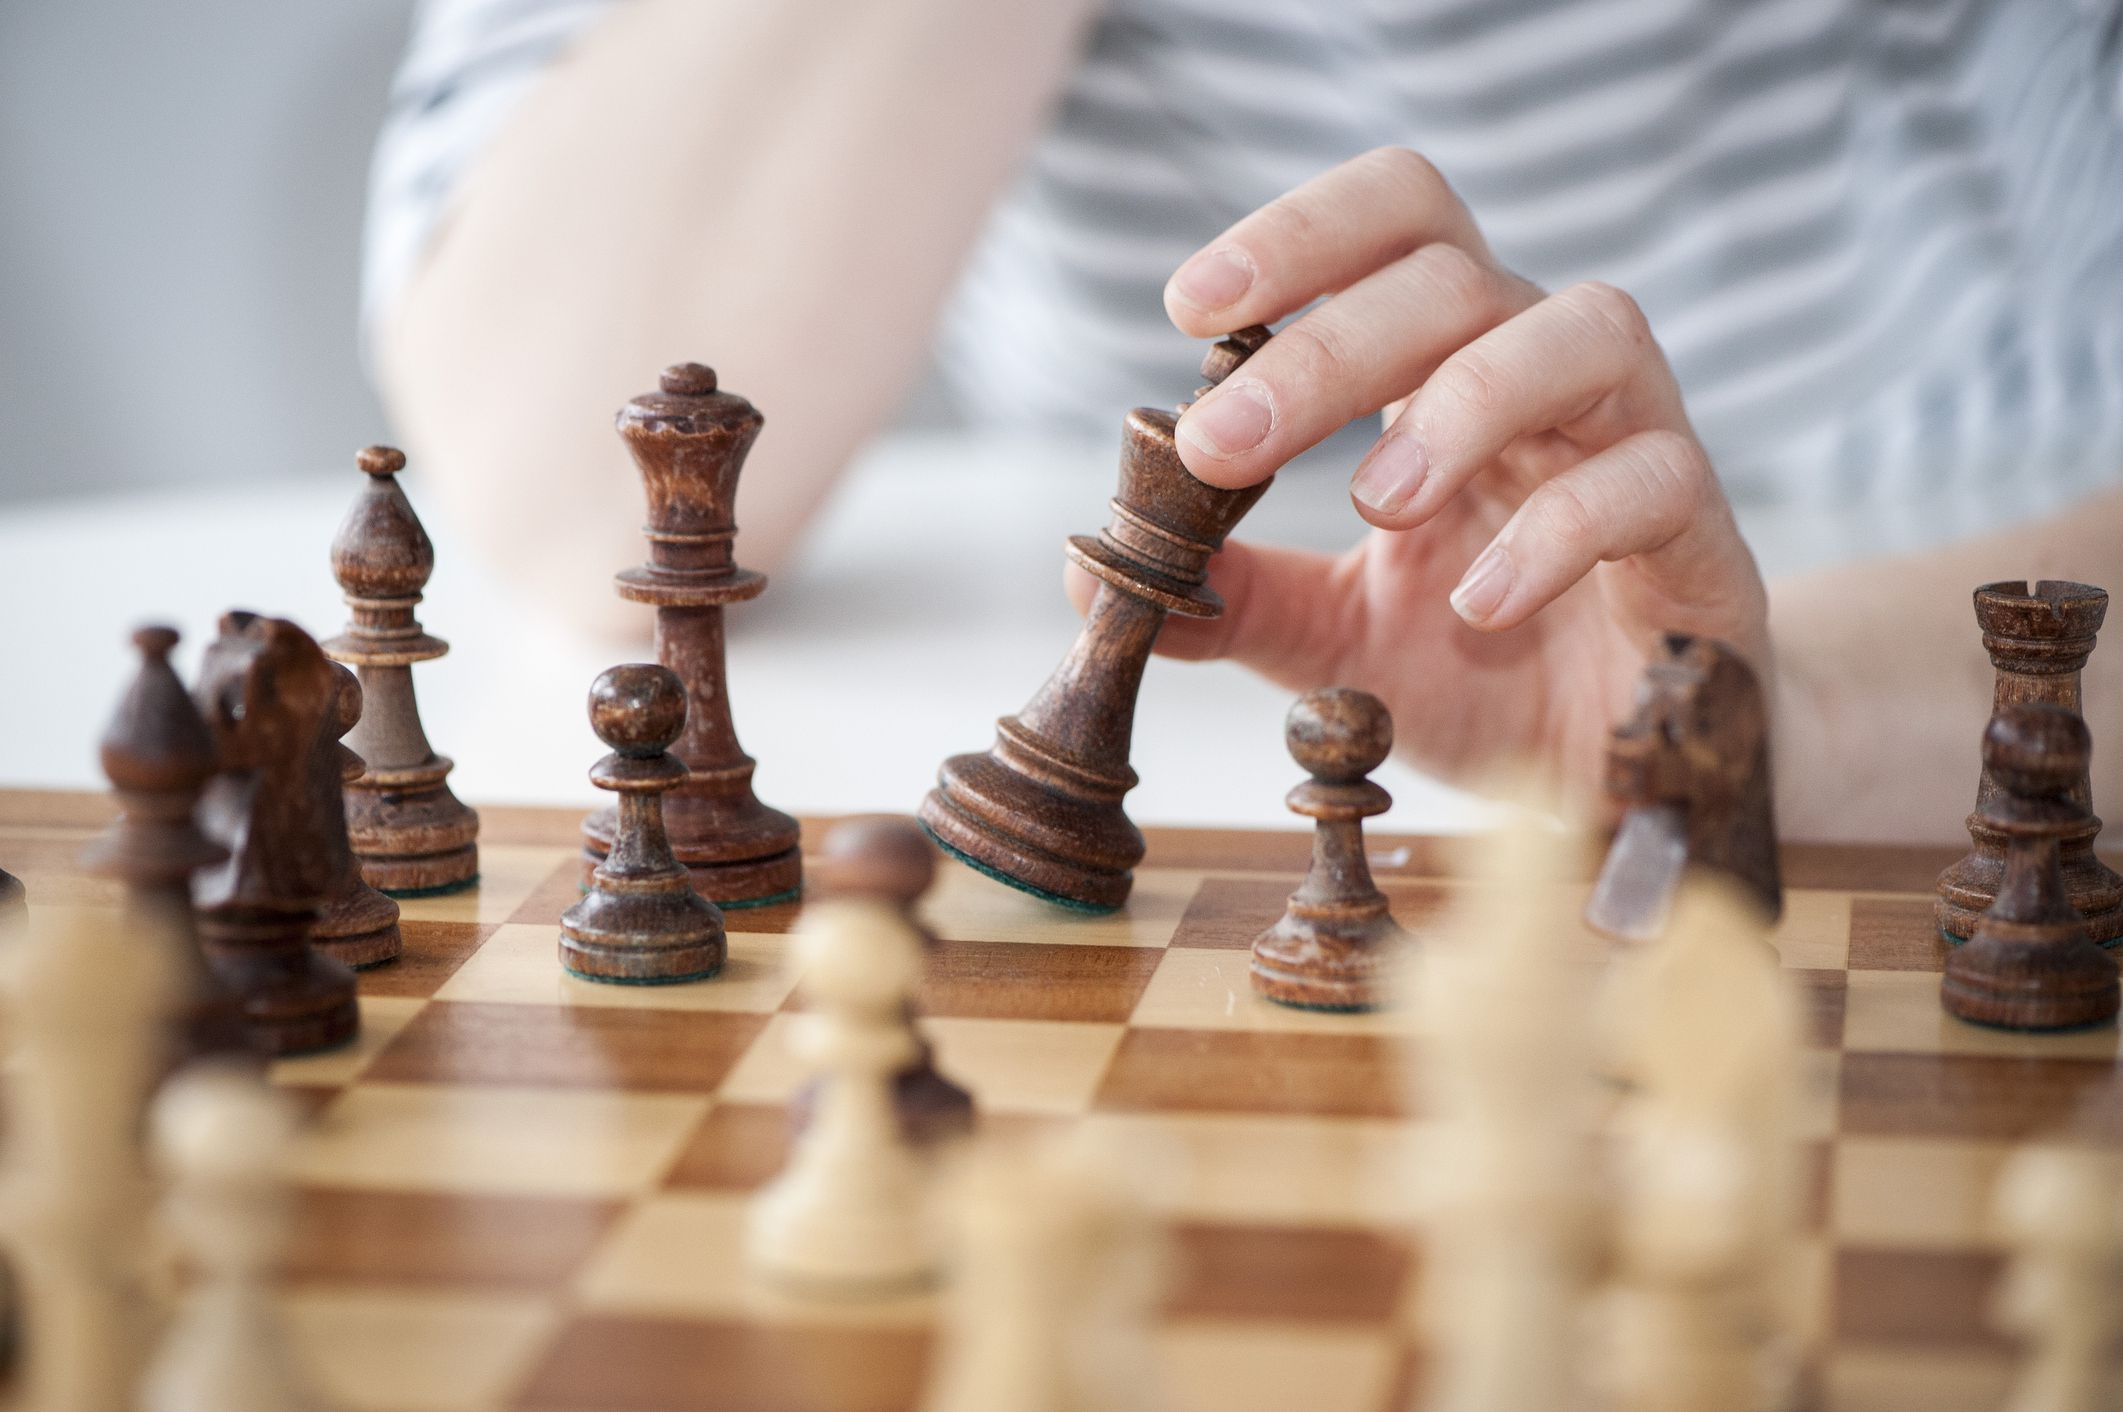 ChessKid Lessons: The Magic Of Chess - YouTube